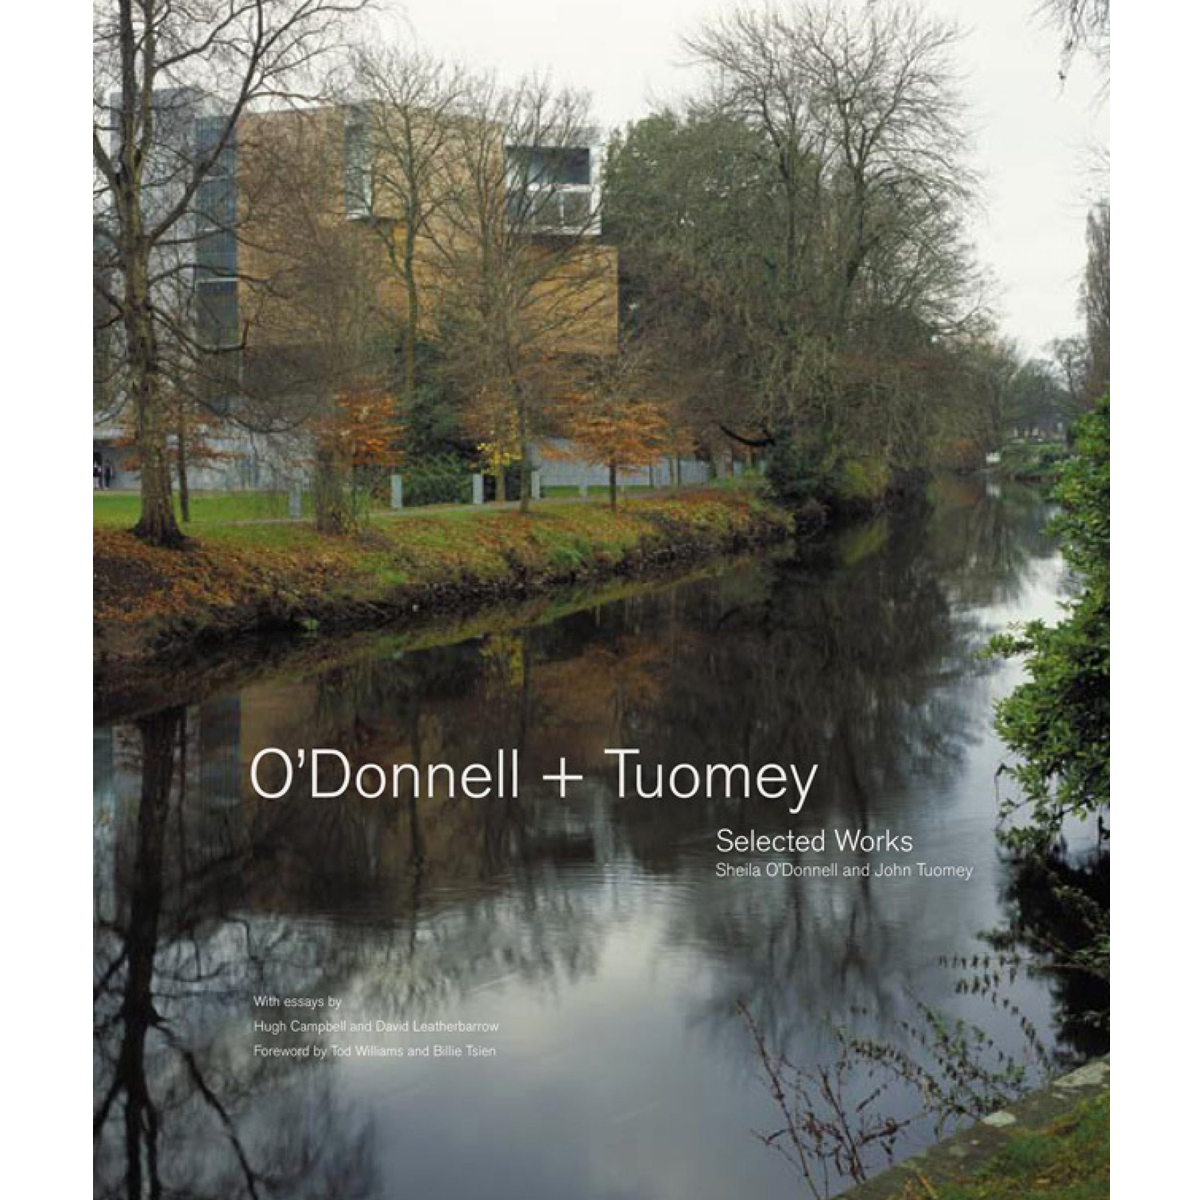 O'Donnell & Tuomey